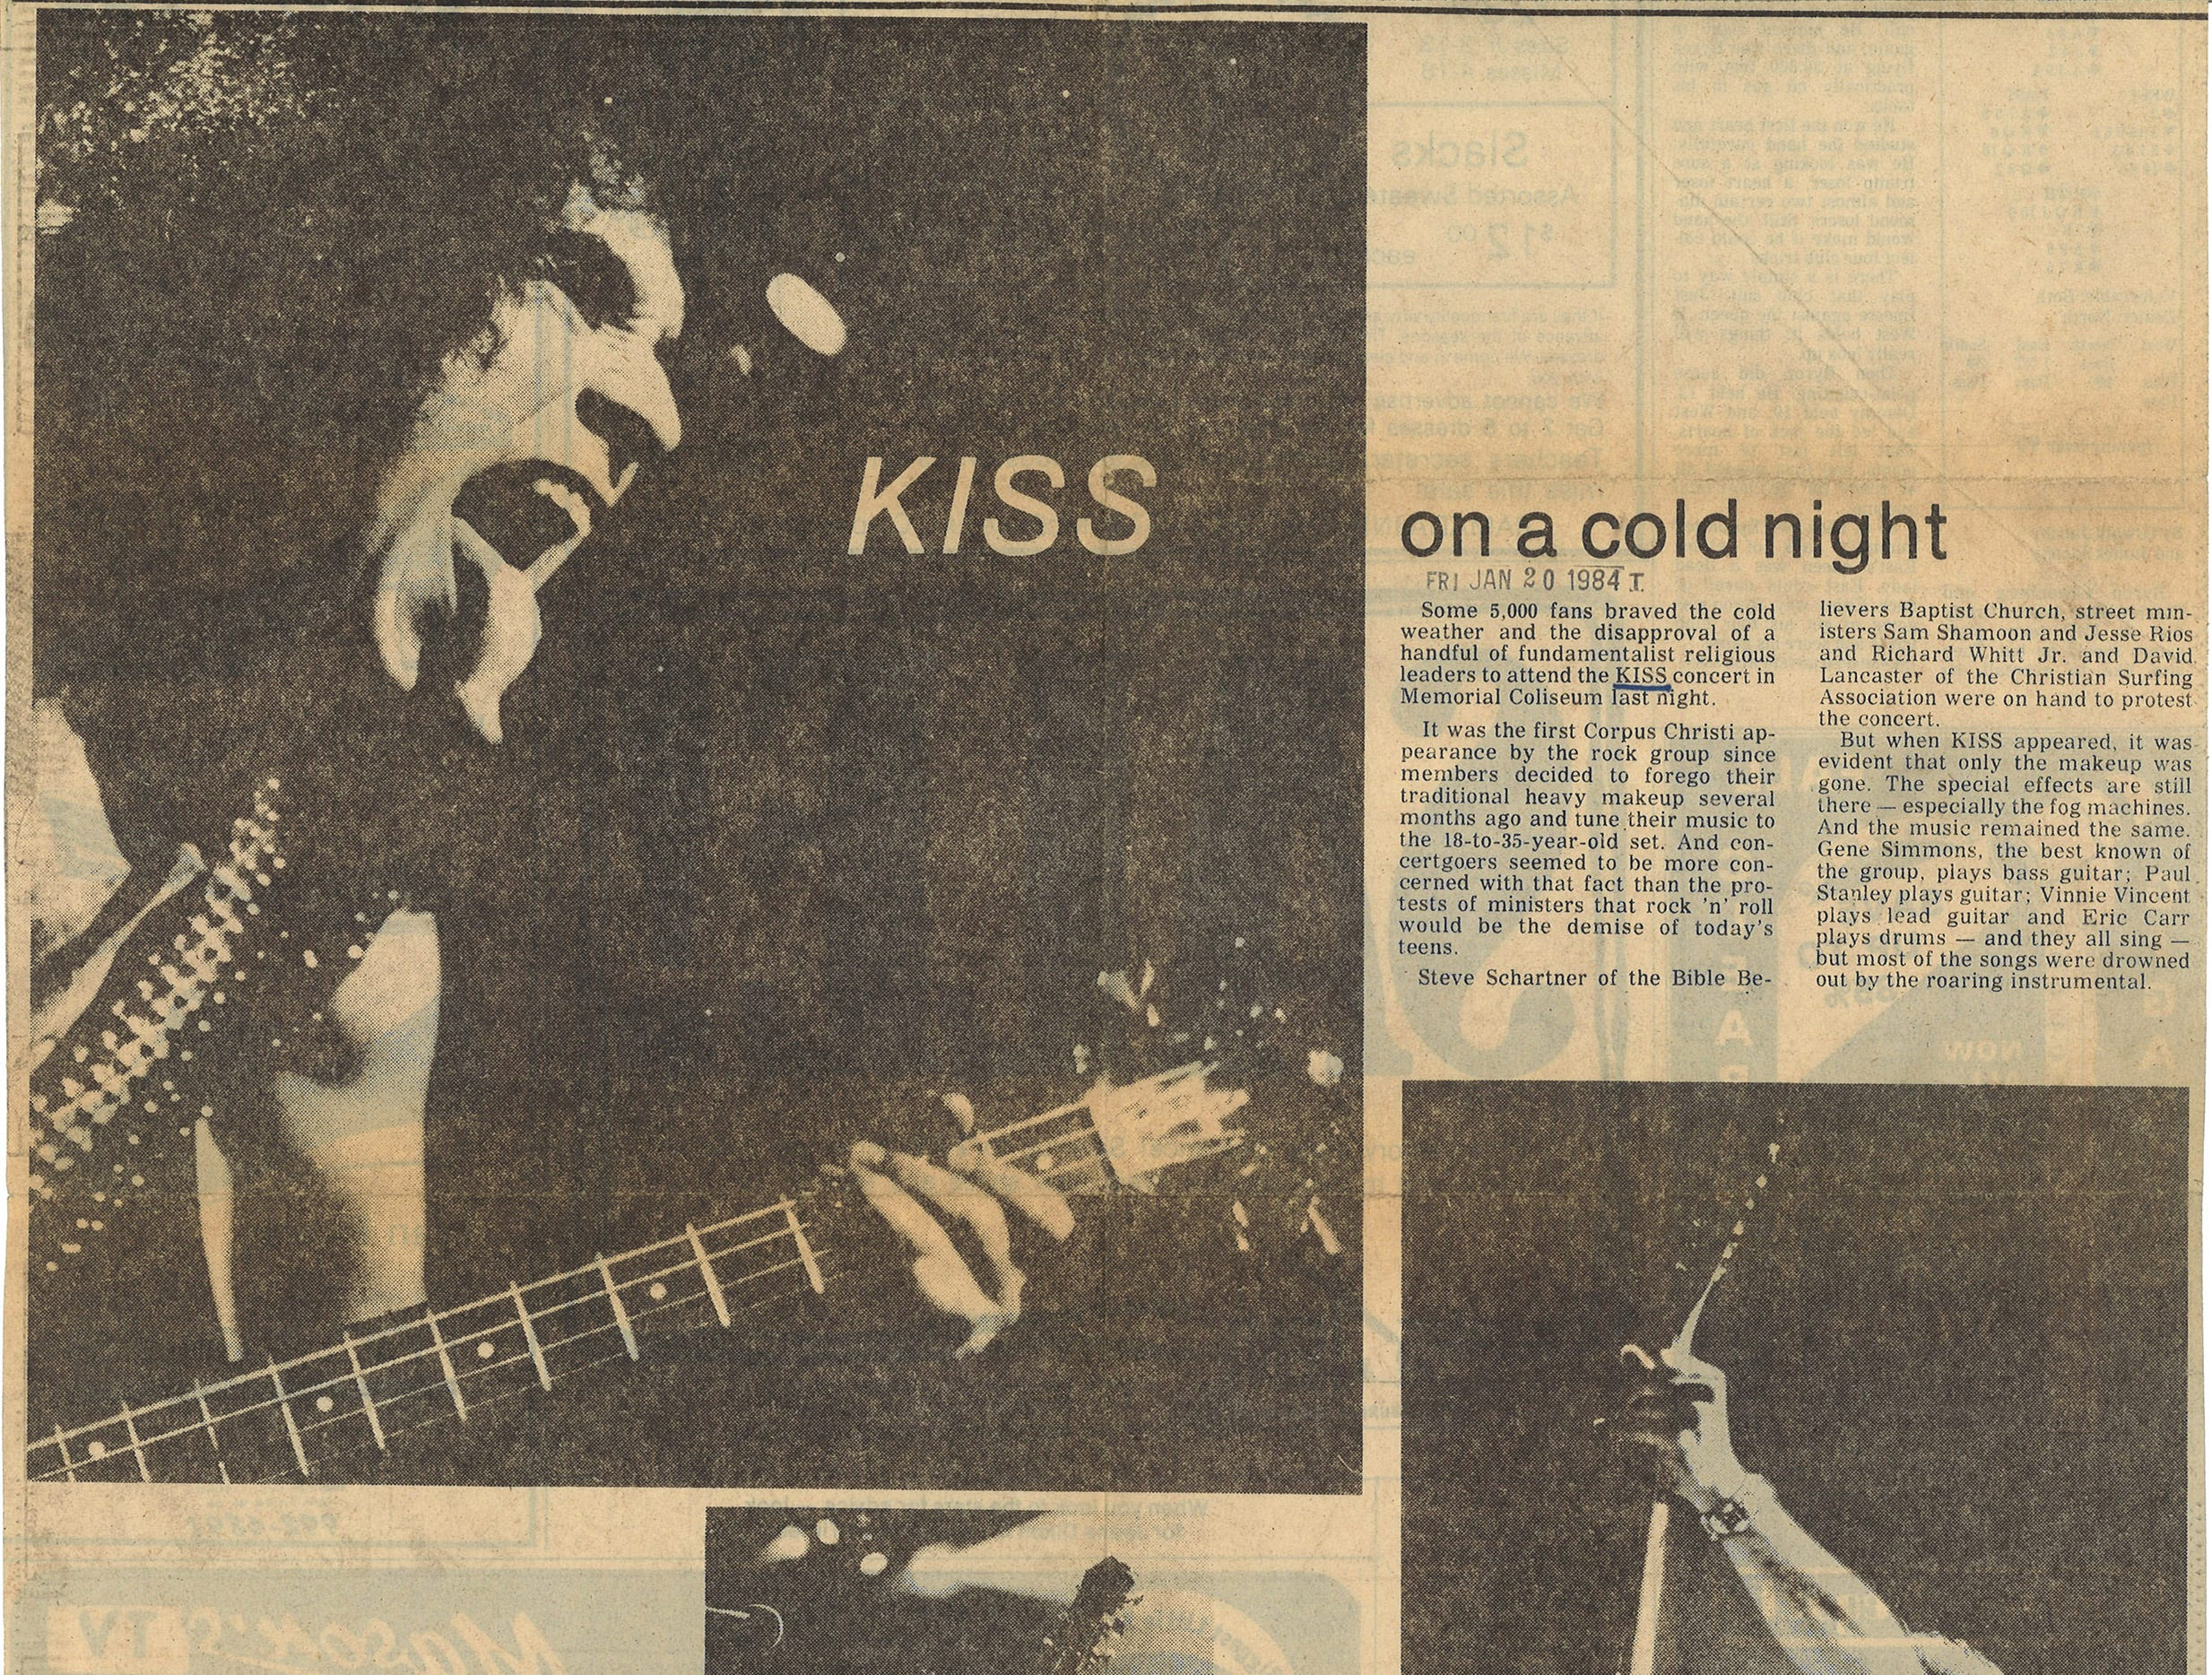 Coverage of KISS concert at Memorial Coliseum in Caller-Times on Jan. 20, 1984.